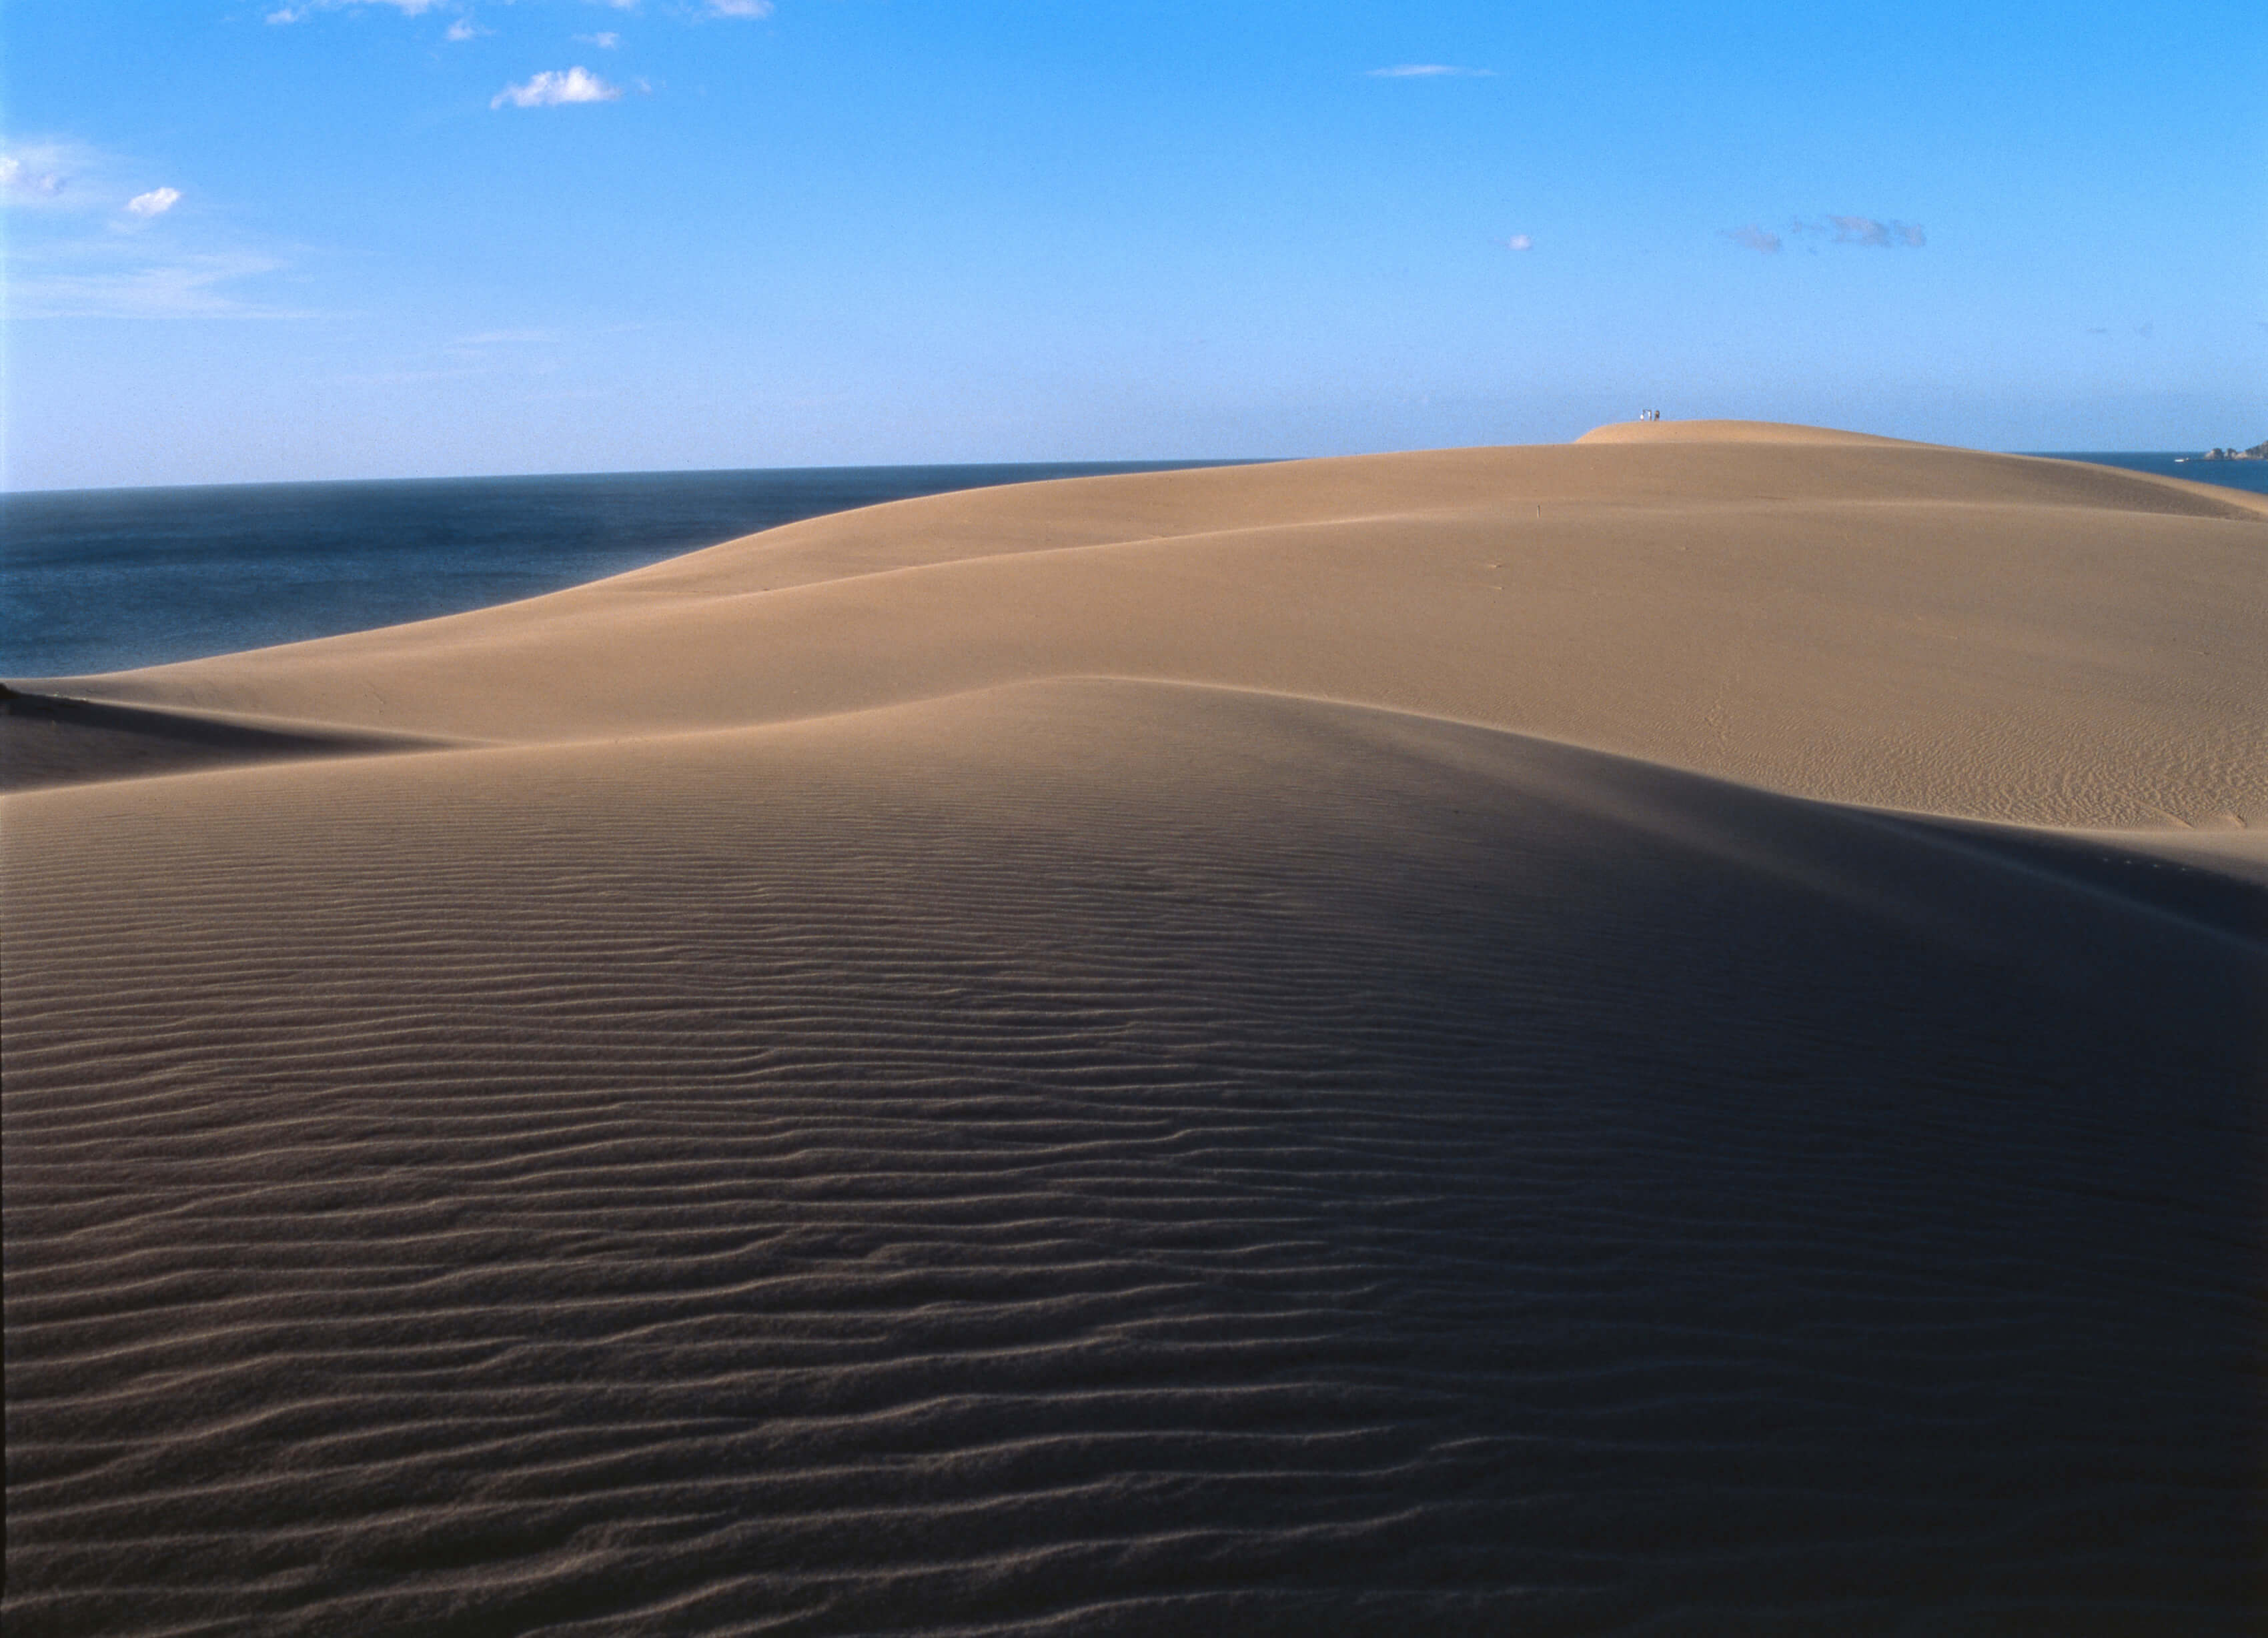 Wattention : Picturesque Japan: The Tottori Sand Dunes